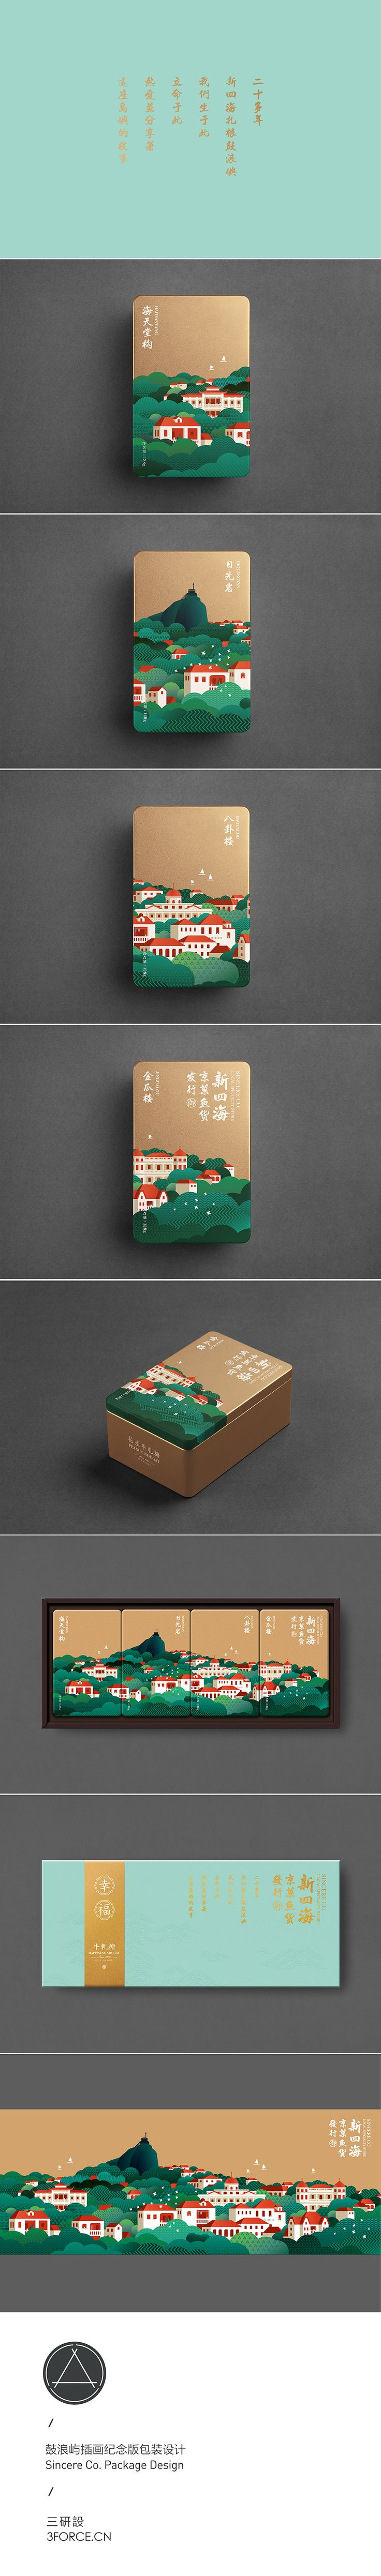 Sincere Co. Nougat Packaging / 新四海牛軋糖包裝設計 on Behance